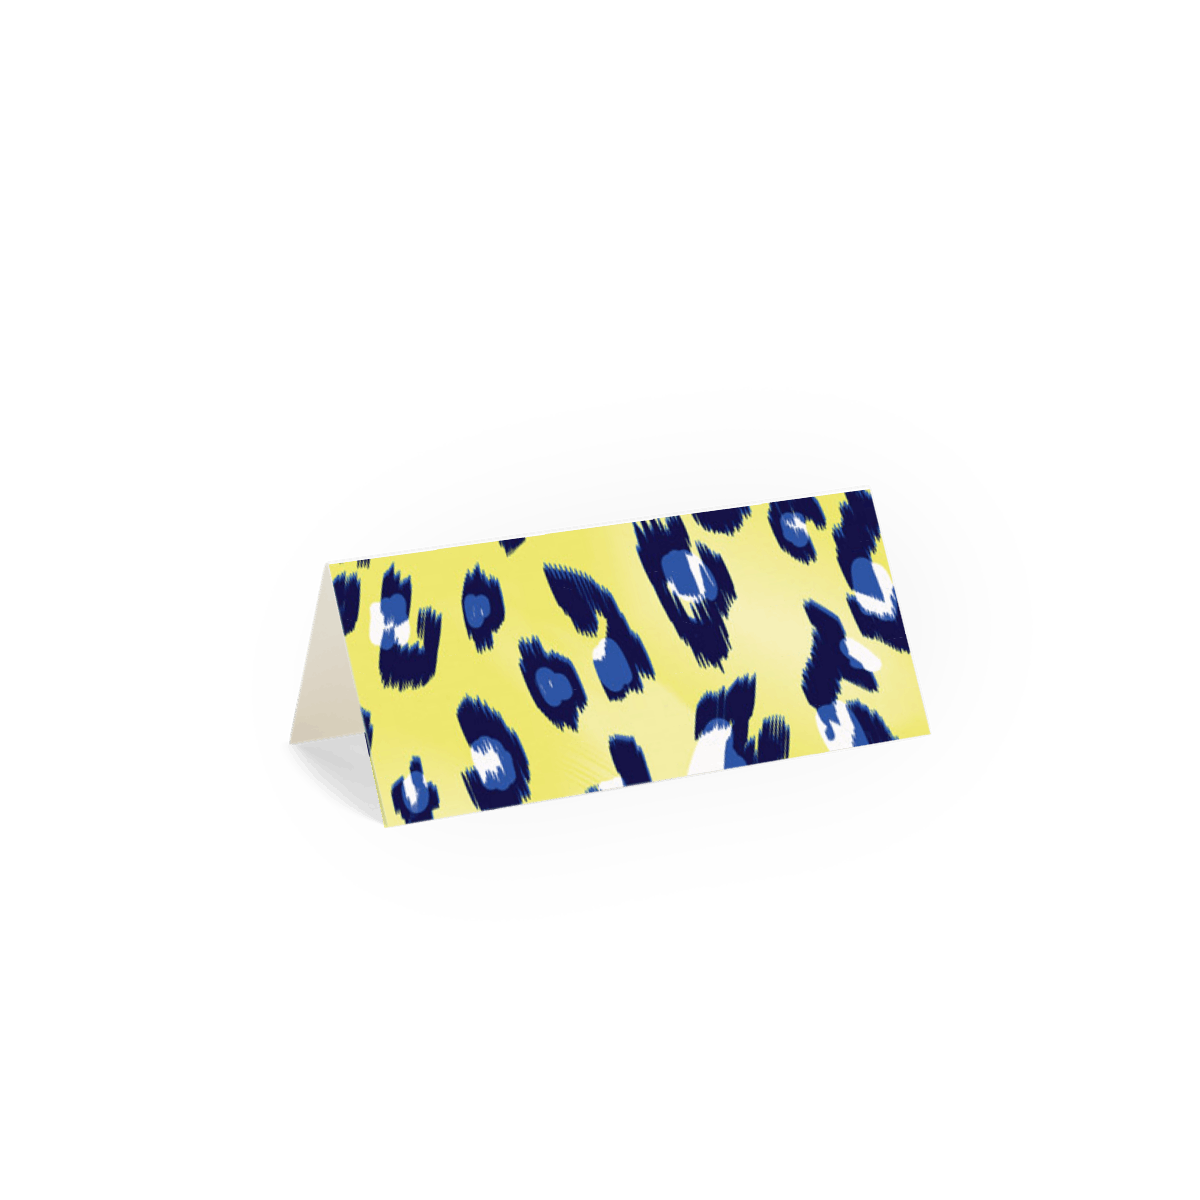 Https%3a%2f%2fwww.papier.com%2fproduct image%2f81828%2f15%2felectro leopard 19713 arriere 1561995905.png?ixlib=rb 1.1